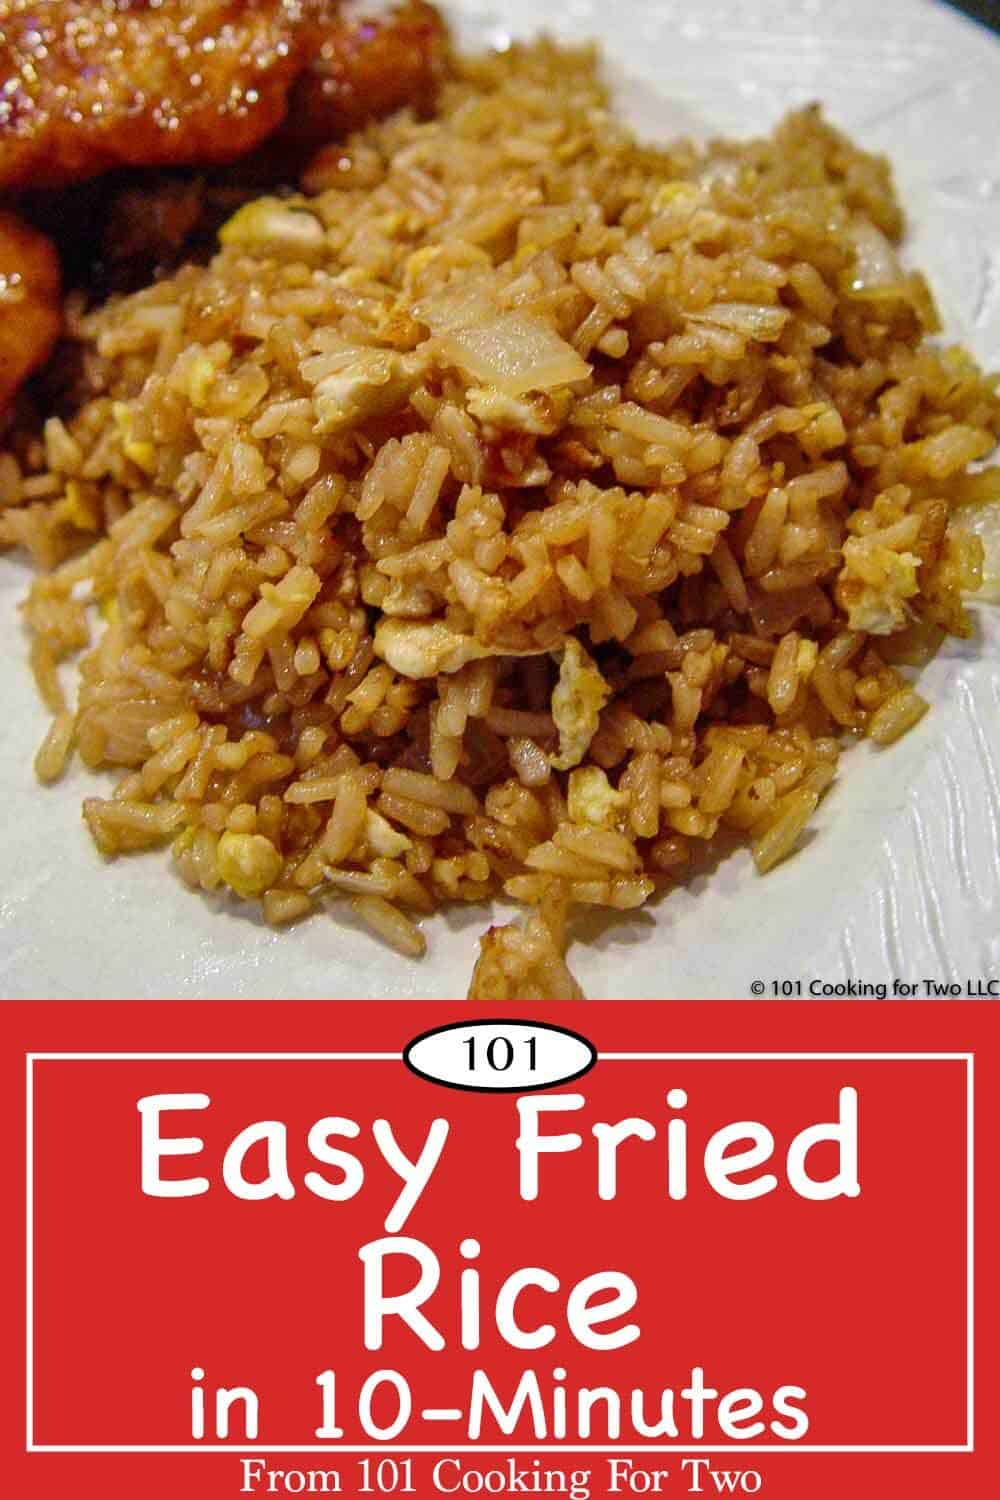 An easy fried rice recipe using Minute Rice for that